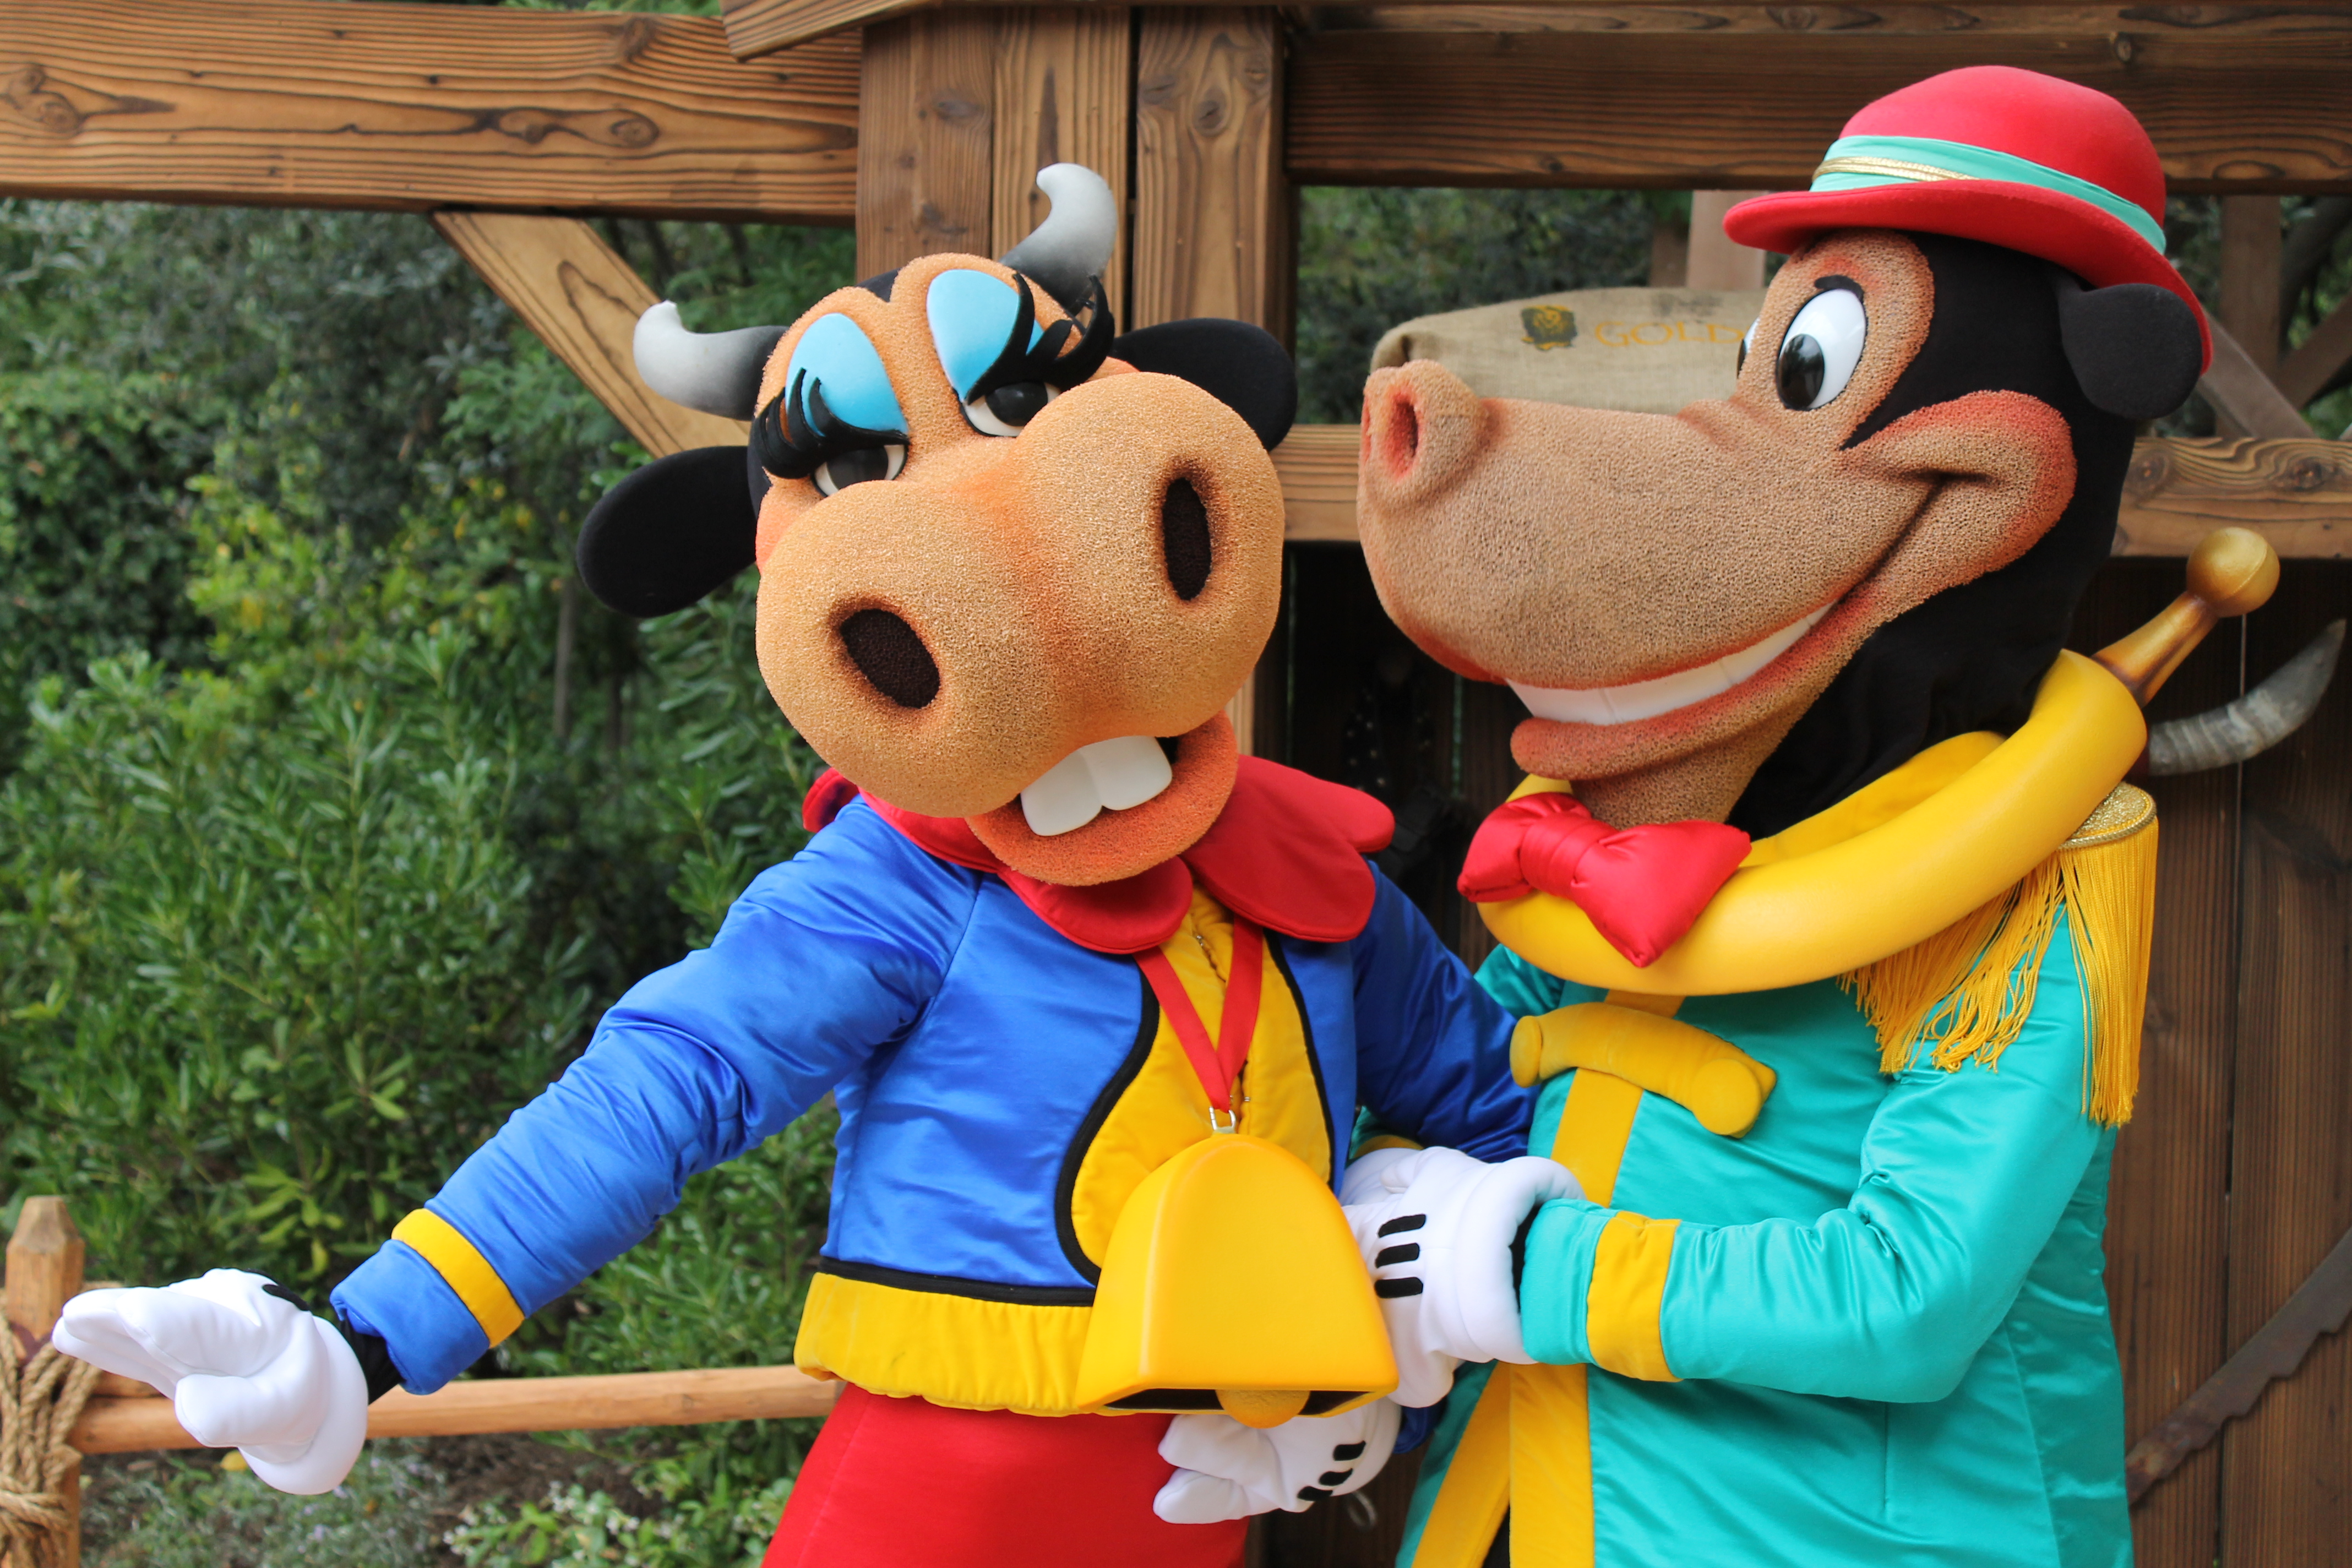 Meeting Horace Horsecollar and Clarabelle Cow - YouTube  Horace Horsecollar And Clarabelle Cow